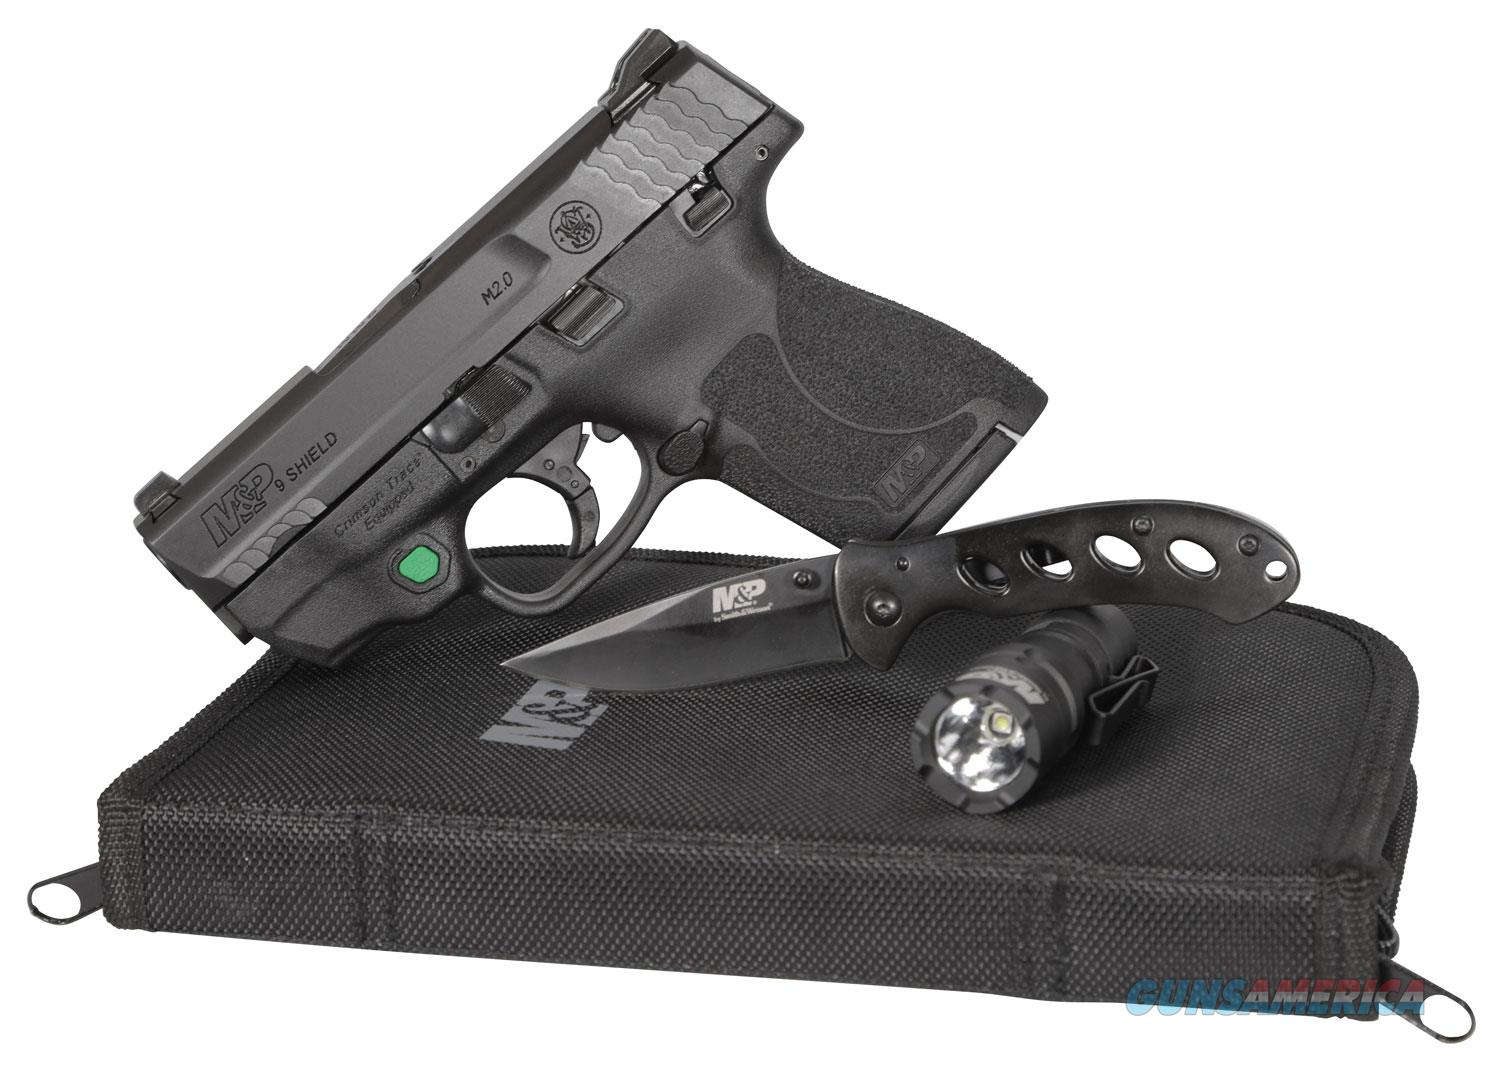 "Smith & Wesson 12396 M&P 9 Shield M2.0 EDC Kit Crimson Green Trace Laser, Thumb Safety ""NO CREDIT CARD FEE""   Guns > Pistols > Smith & Wesson Pistols - Autos > Shield"